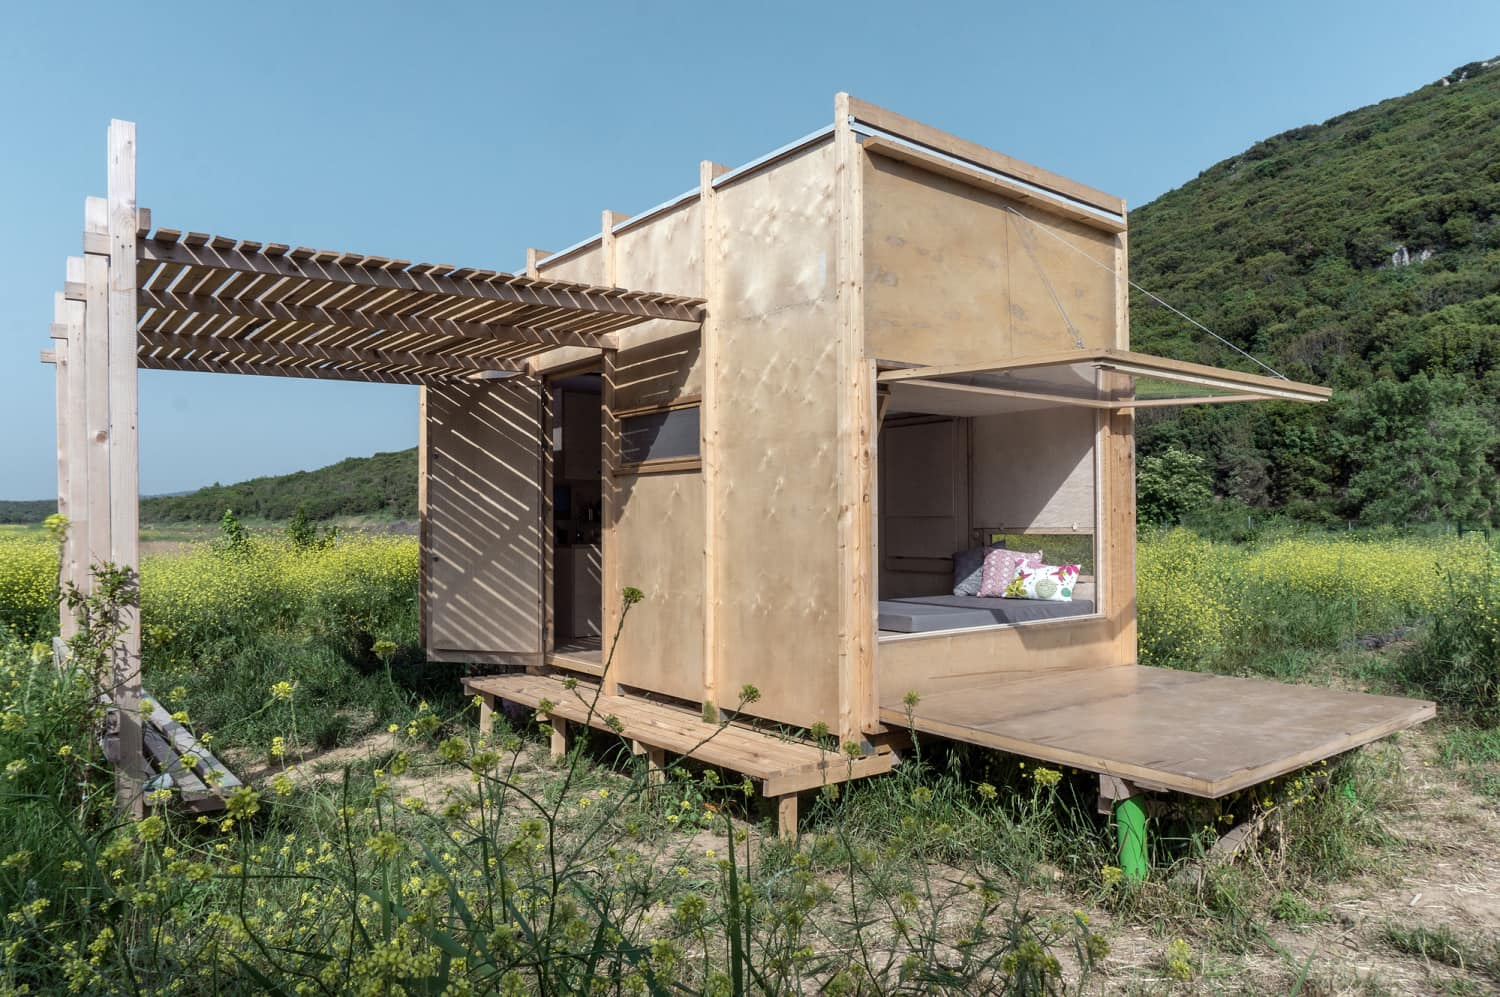 This 194 Square Foot Pre-Fab Cabin Is the Ultimate Off-the-Grid Escape